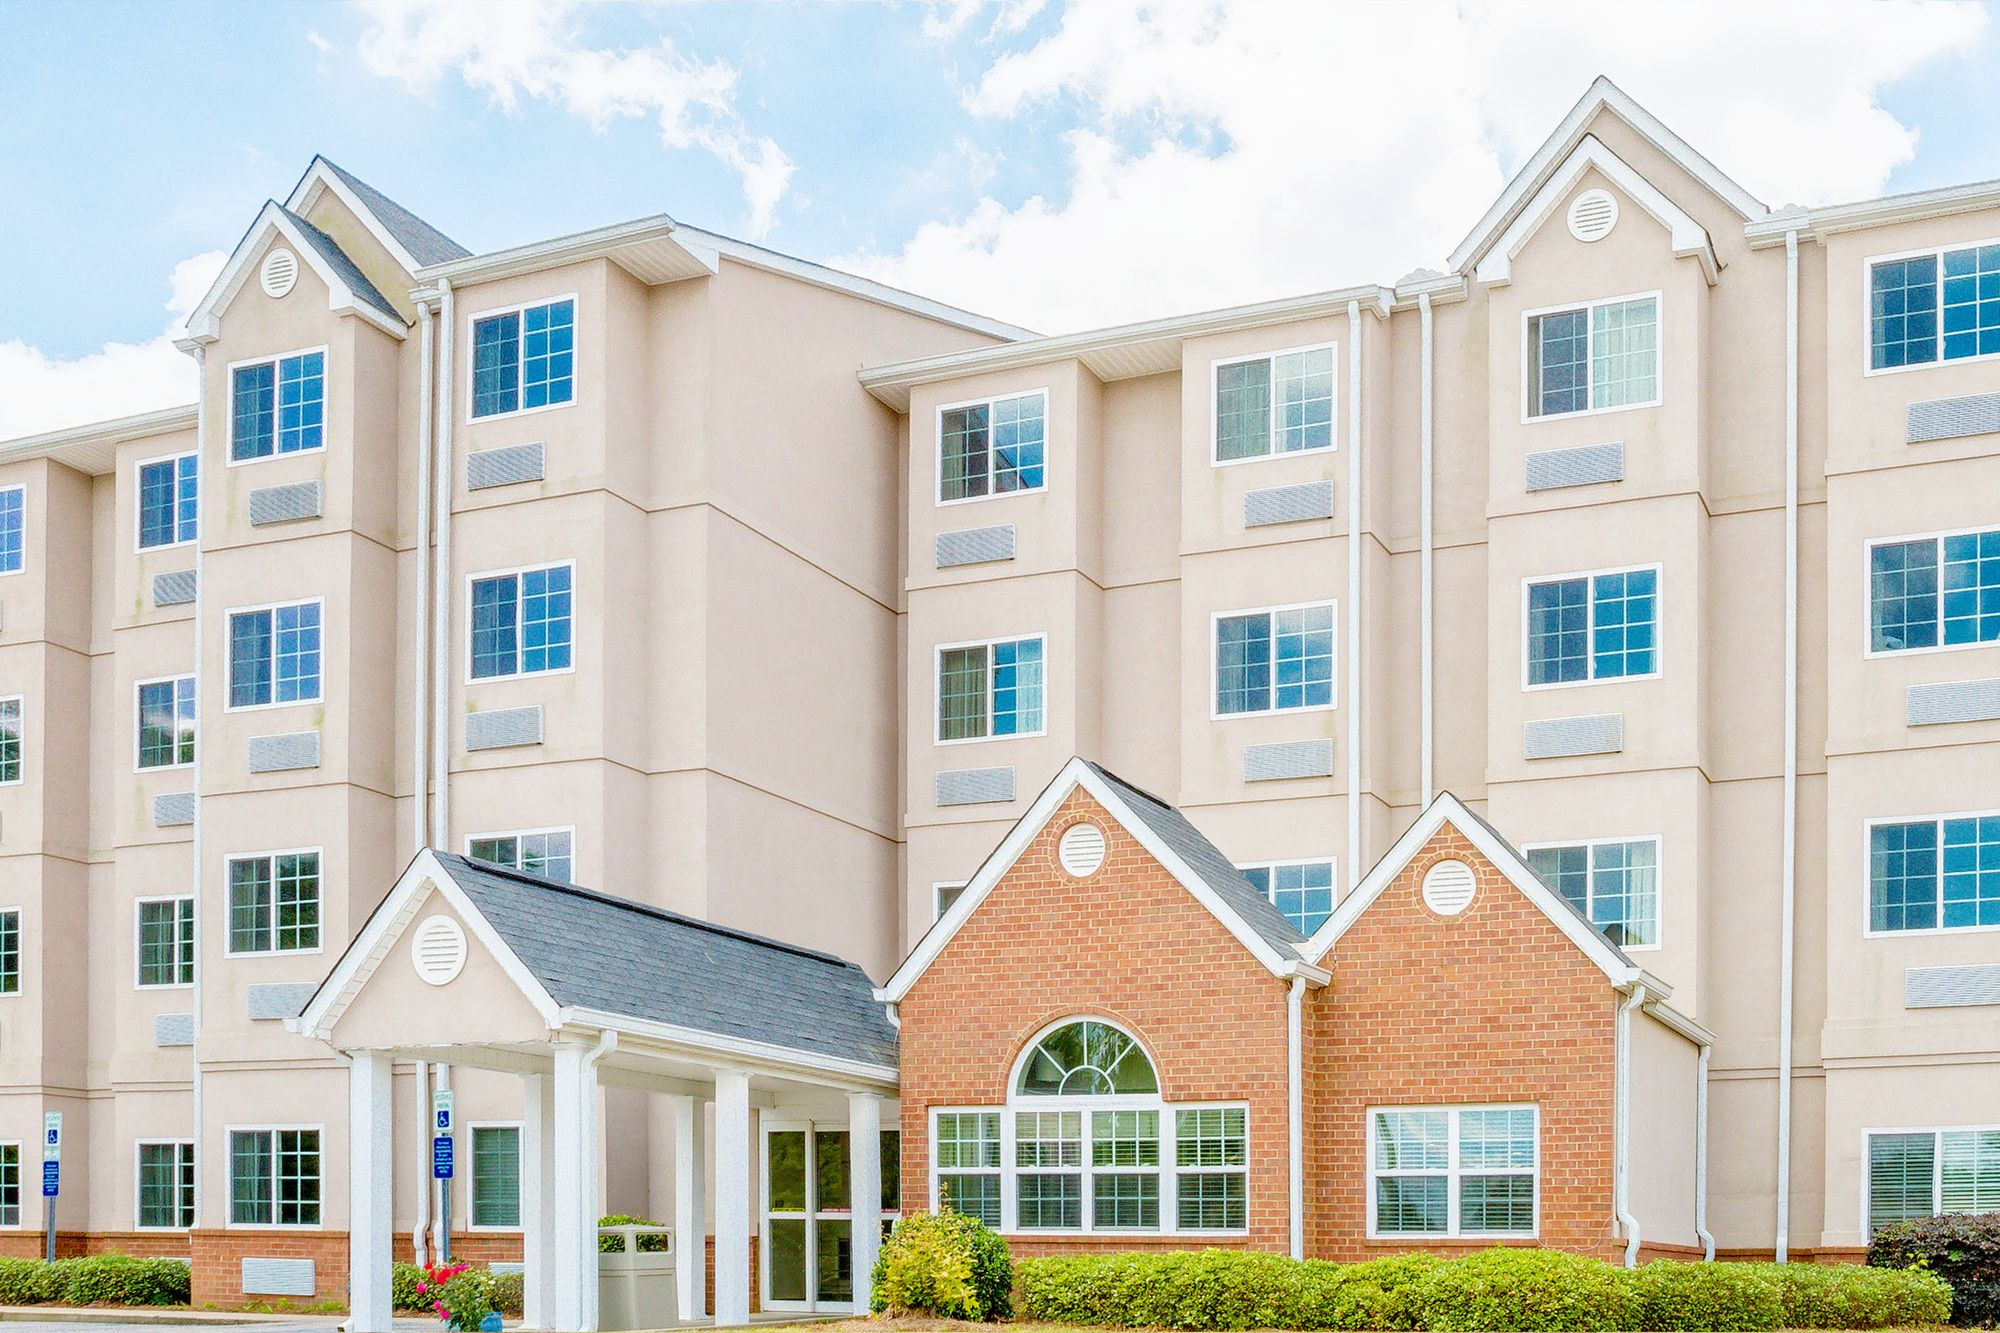 Microtel Inn & Suites by Wyndham Hoover/Birmingham in Hoover, AL